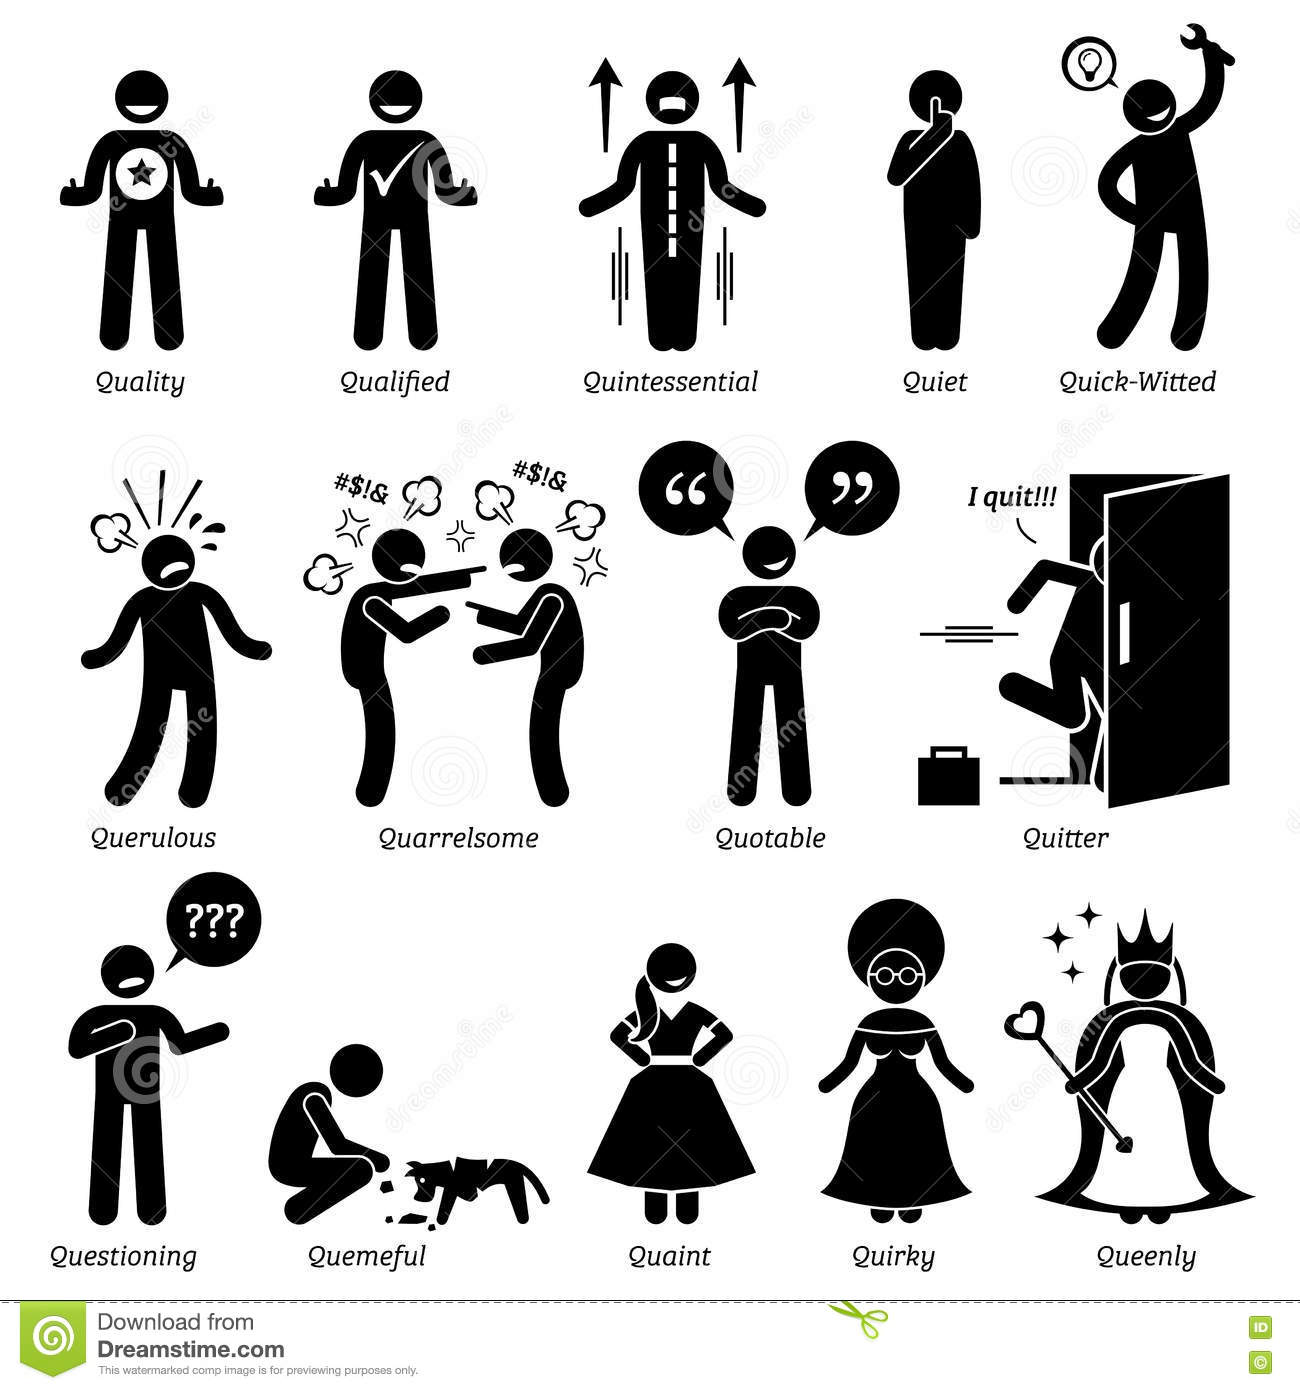 Personalities clipart #12